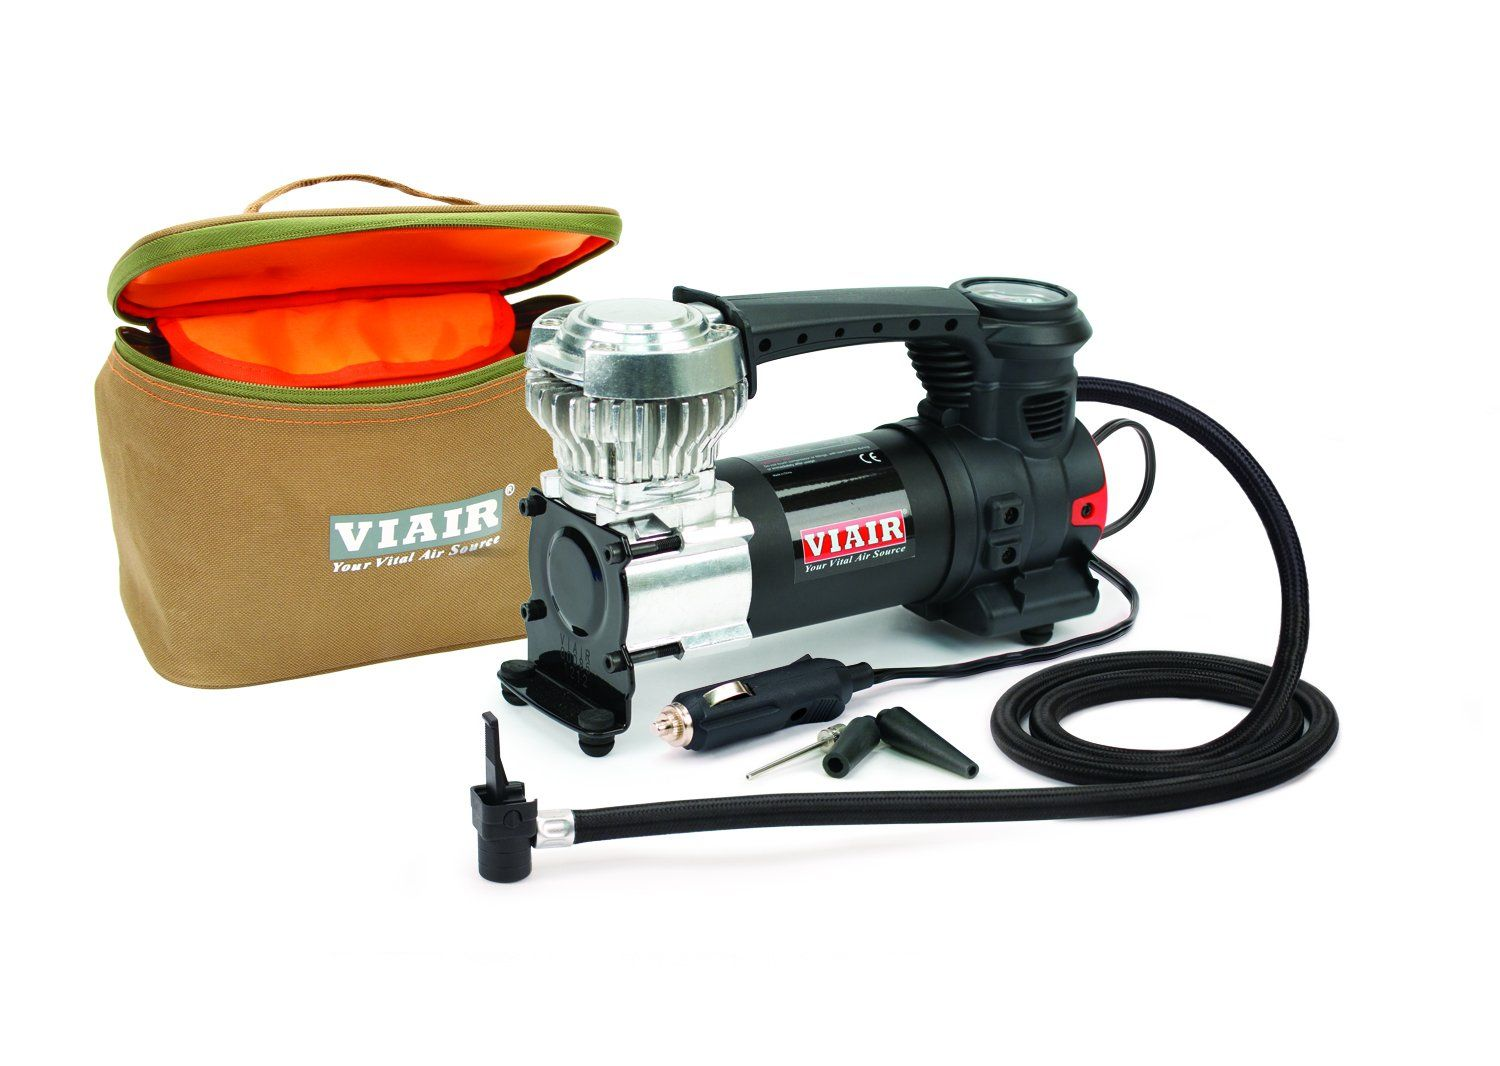 VIAIR 84P Portable Compressor You can find out more